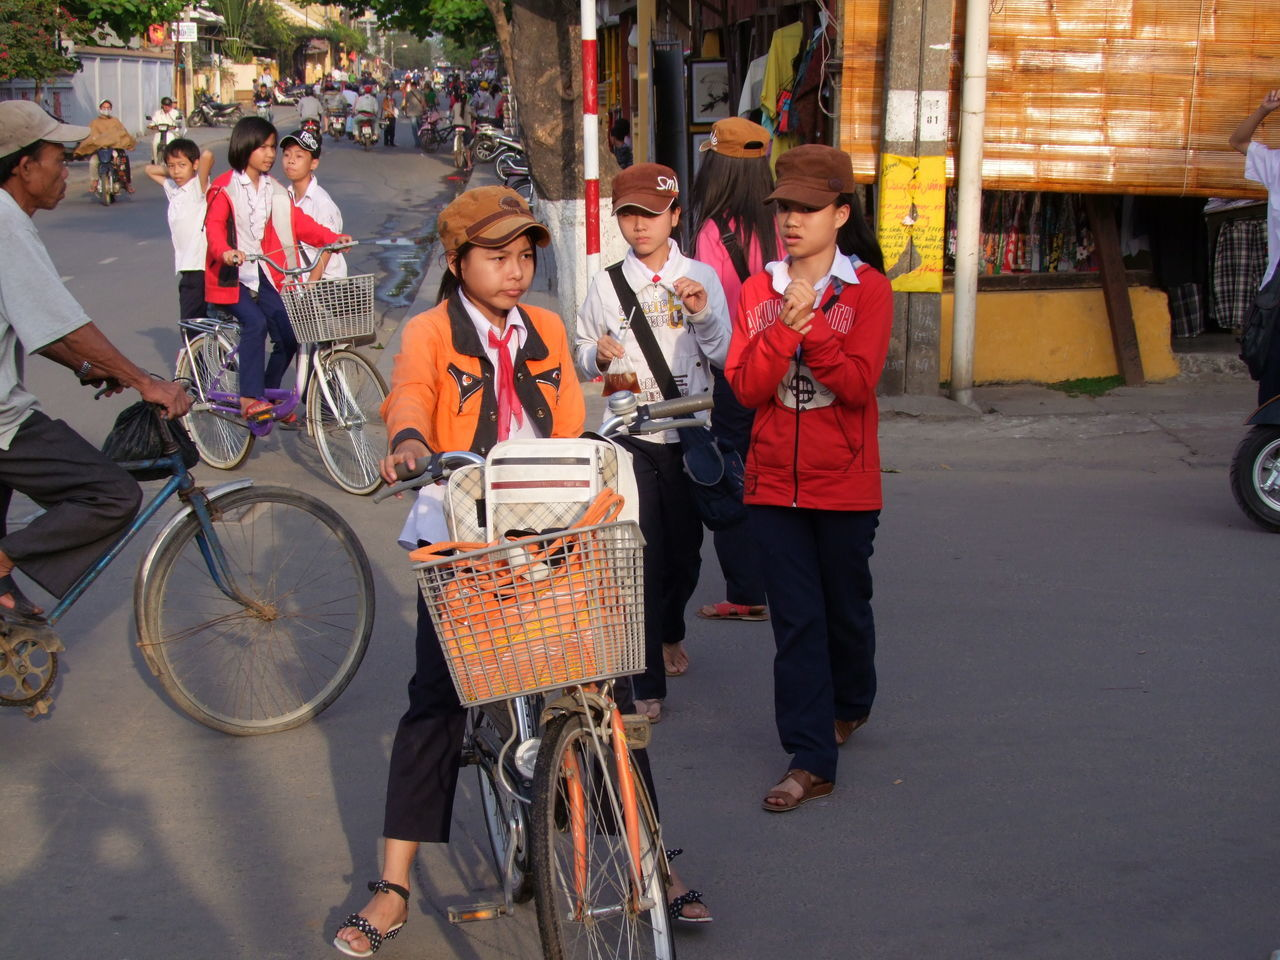 School Children Bicycles City City Life Composition Culture Full Frame Hoi An Leisure Activity Lifestyles On The Way Home Outdoor Photography School Children Street Sunlight And Shadow Traditional Traditional Clothing Uniforms Vietnam